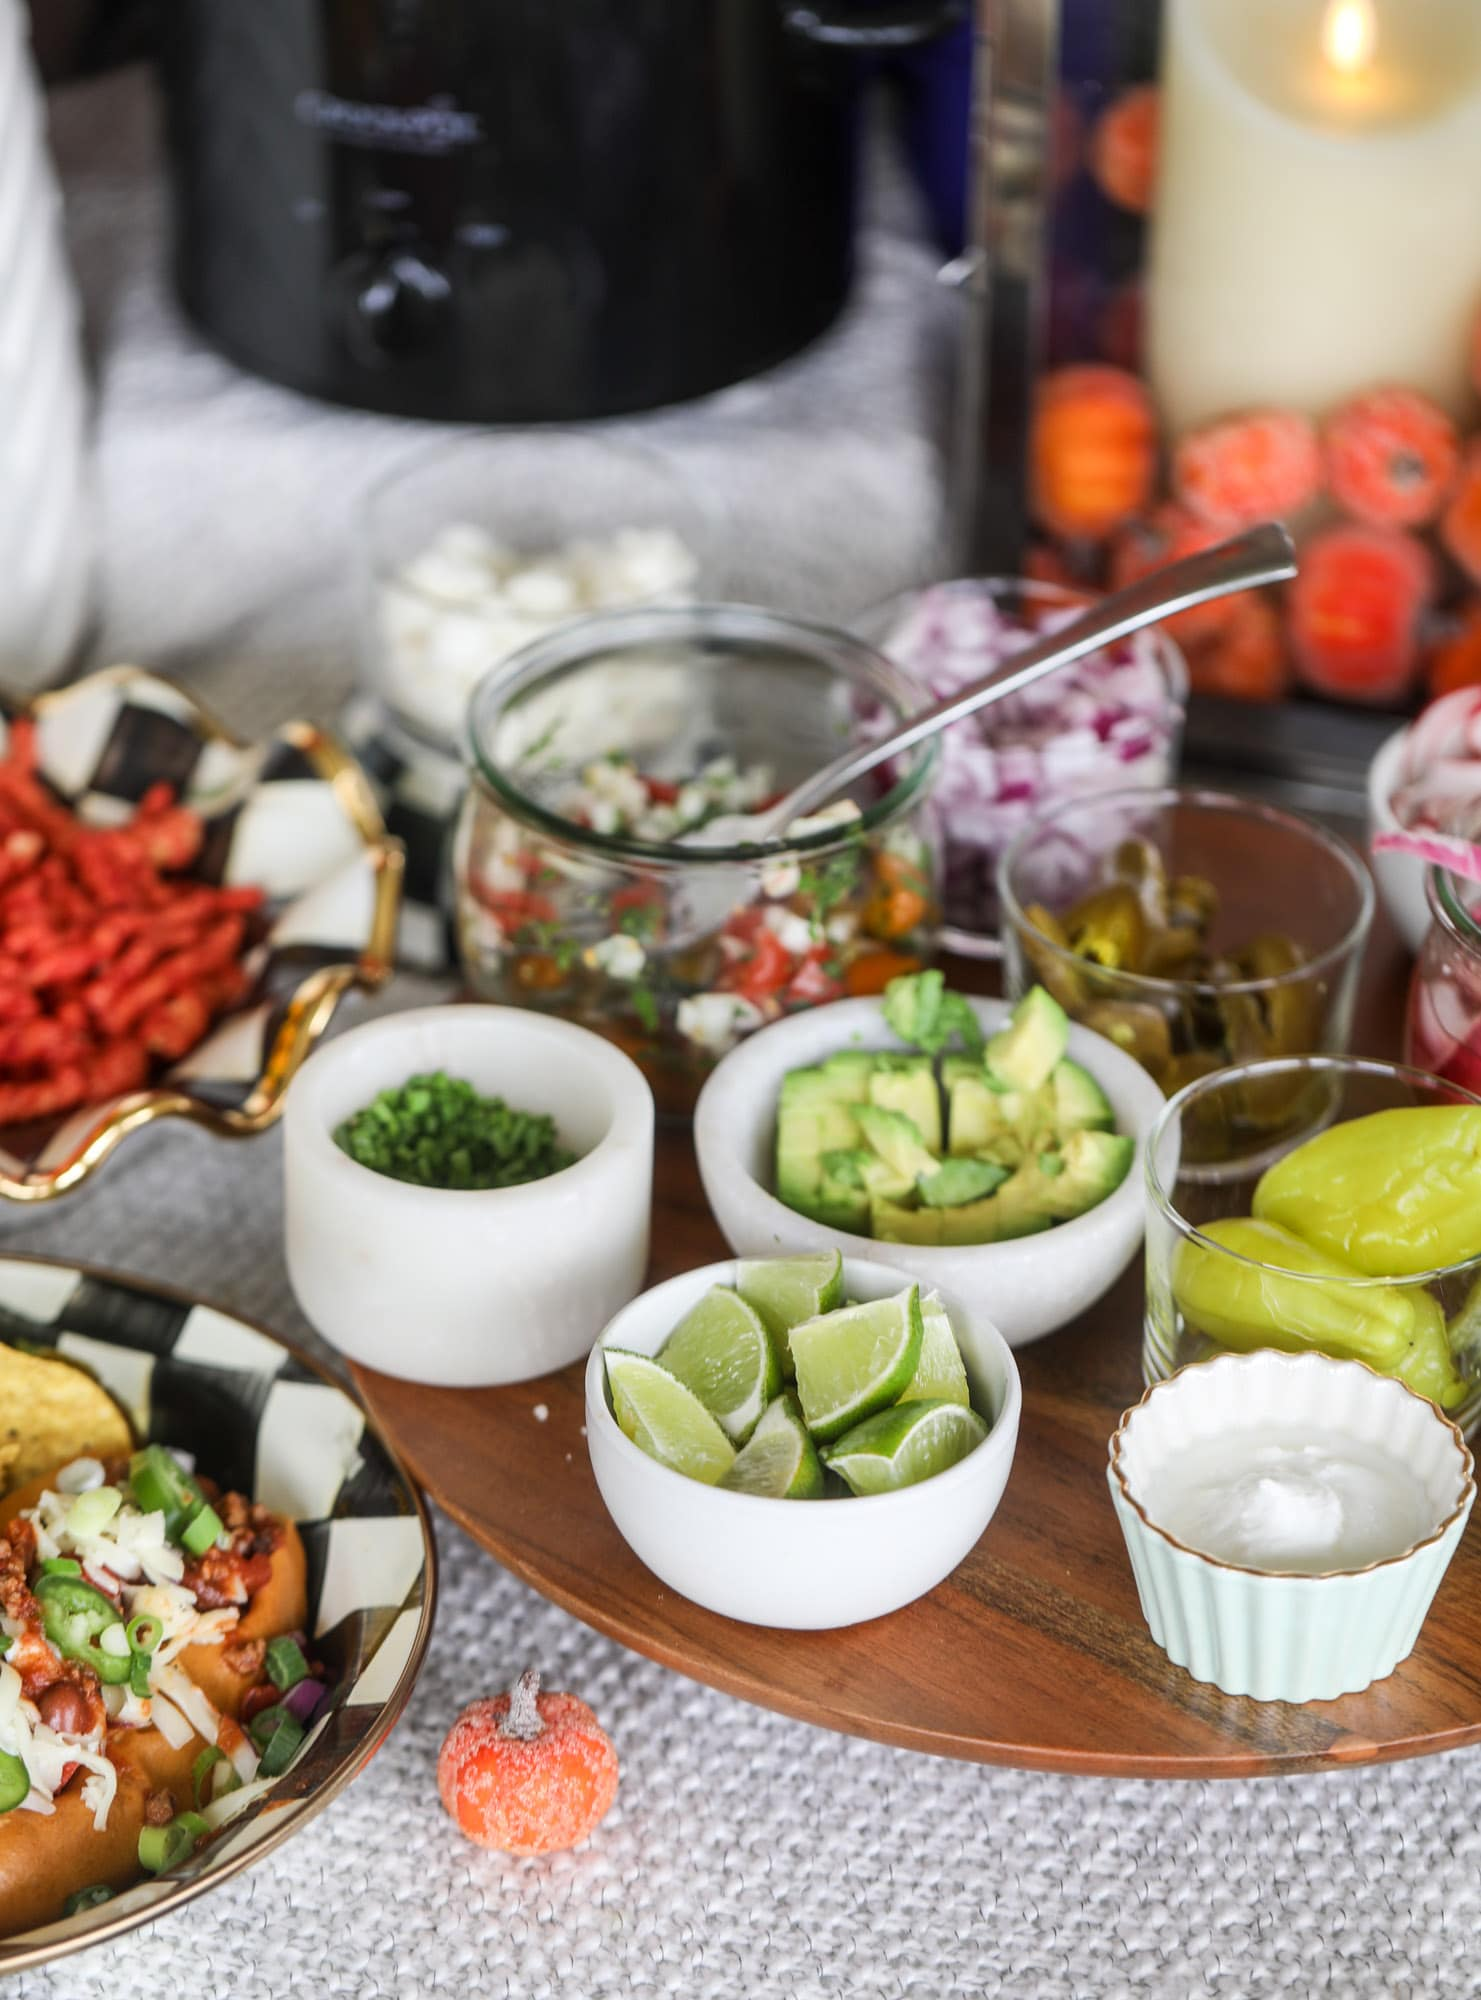 This is the best way to set up a chili bar! All my tips and tricks for setting up a perfect chili bar with multiple toppings, a nacho bar, hot dogs - all done with prep to make the day of the party super easy! This chili bar is goals. I howsweeteats.com #chili #bar #how #to